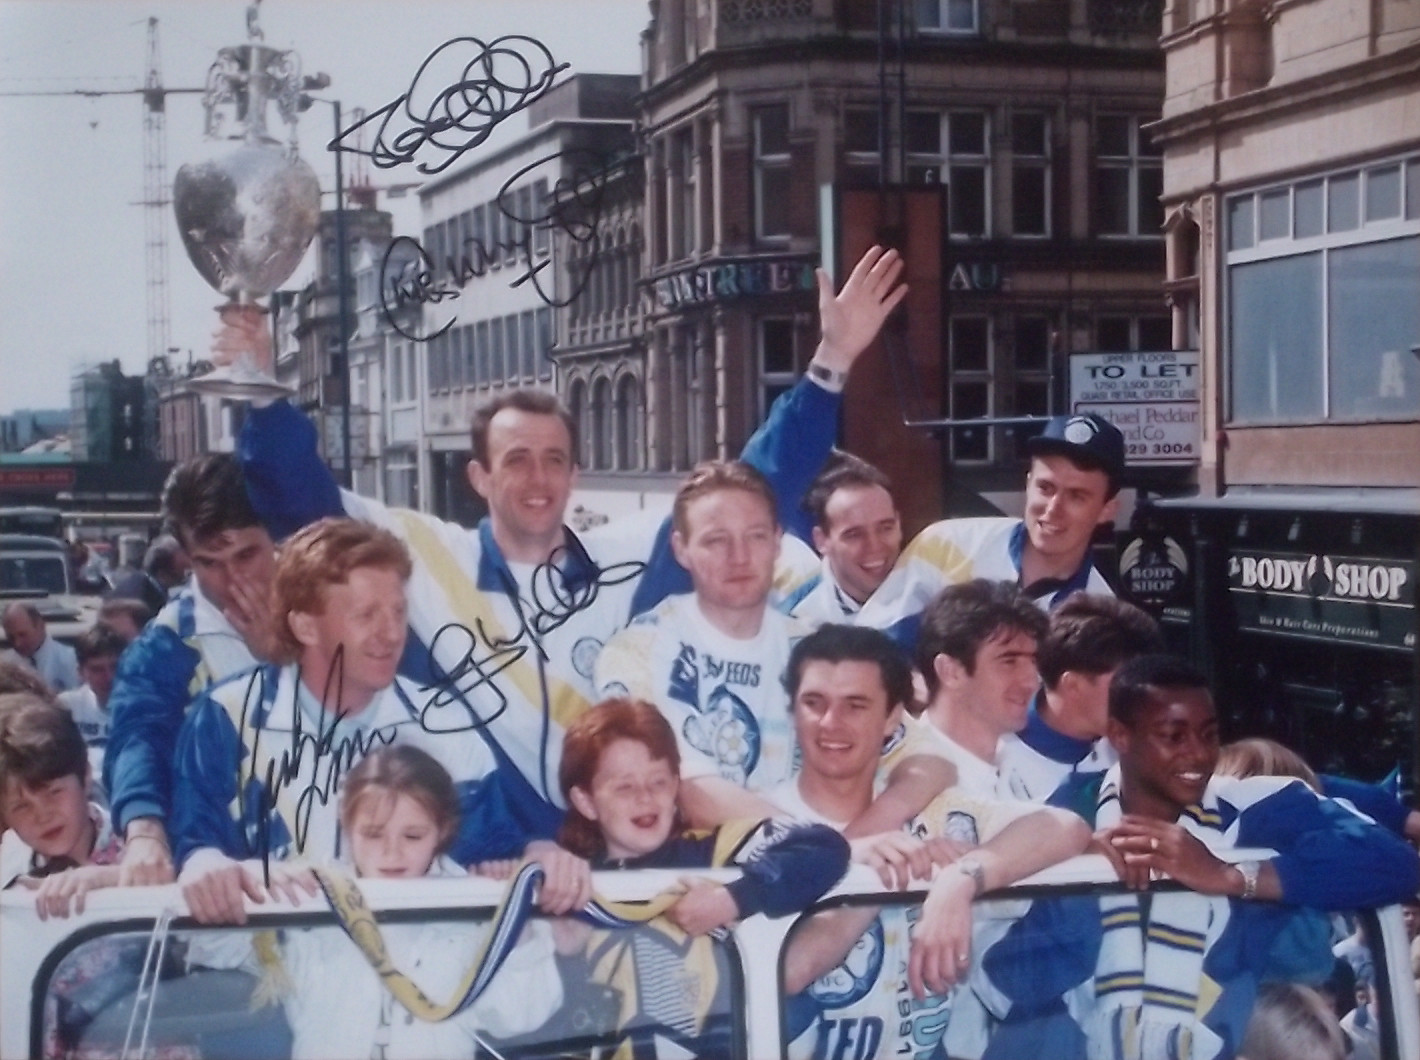 Leeds United 1991-92 Divison 1 Champions Signed Photo Open Top Bus Parade